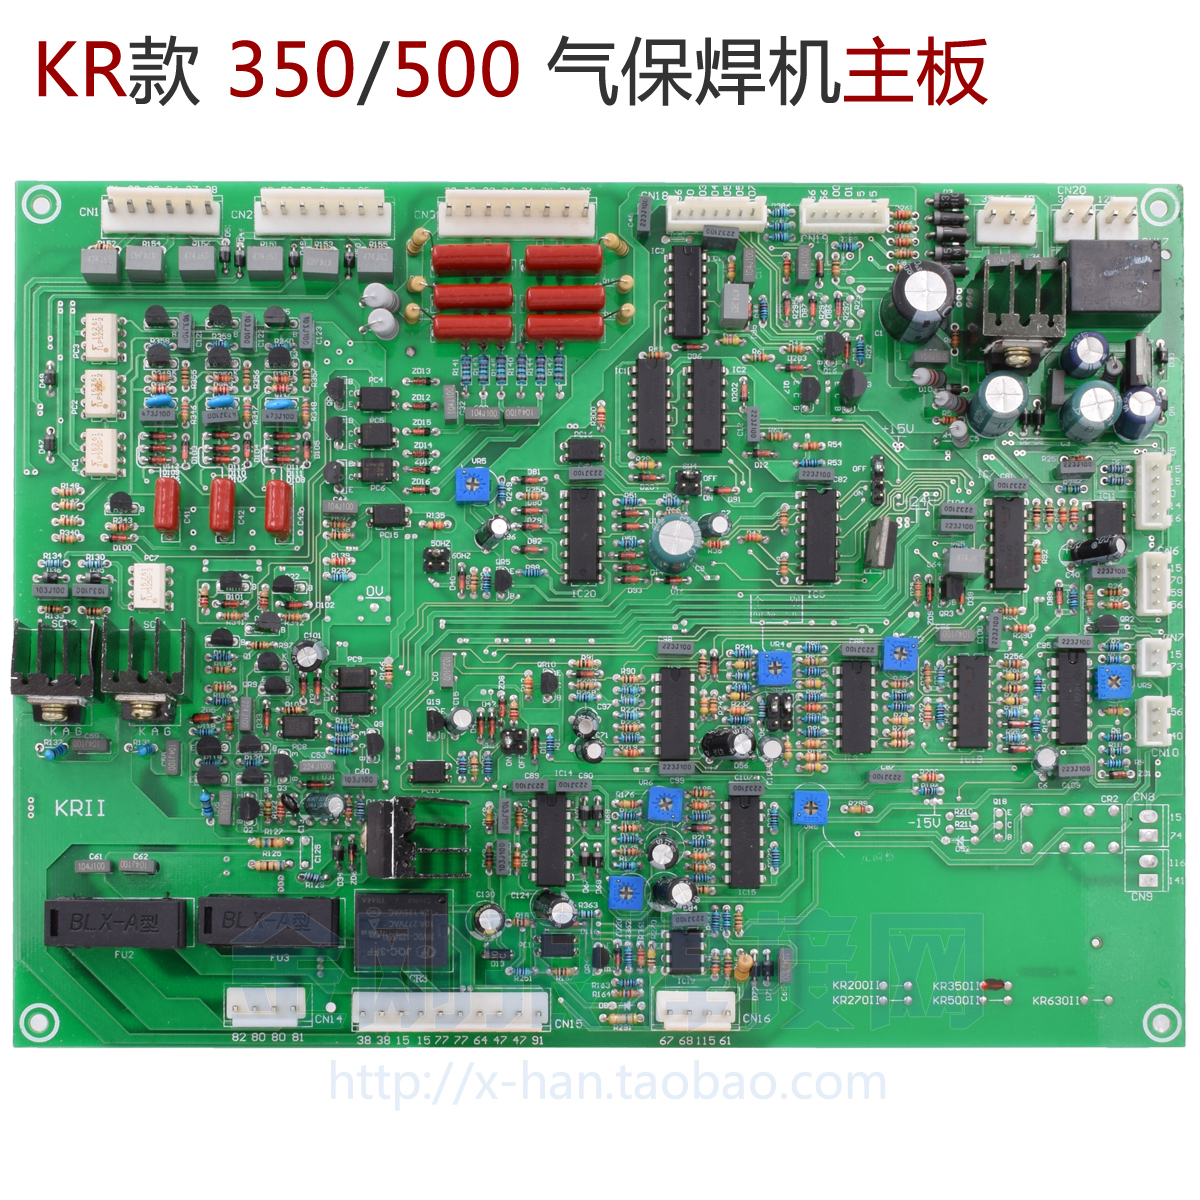 KR SCR air protection welding machine main board circuit board circuit board 350500 general maintenance accessories inverter electric welder circuit board general money welding machine 200 drive board